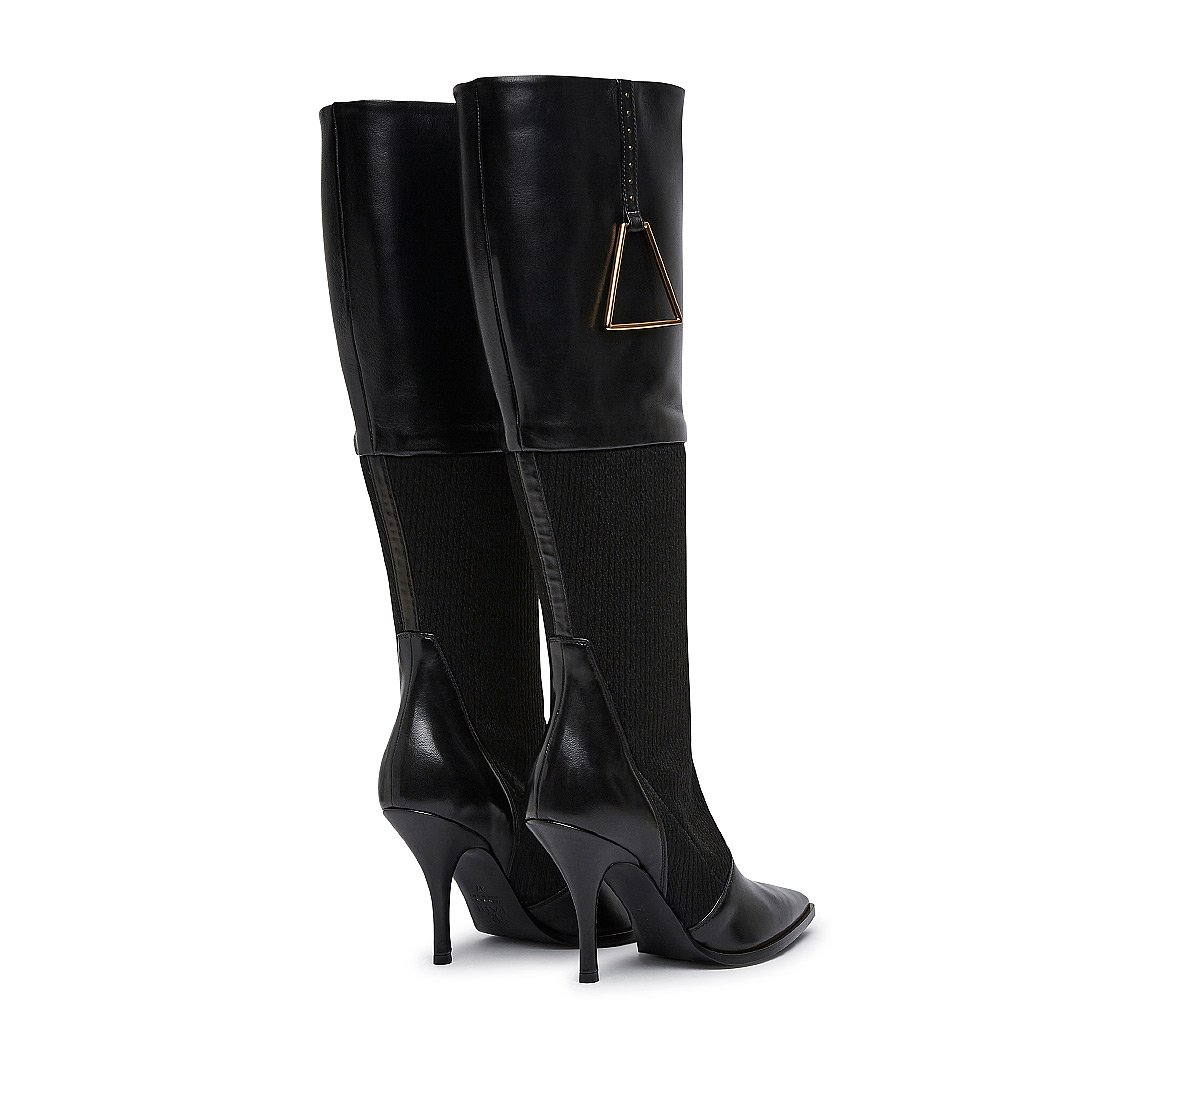 Nappa leather boots